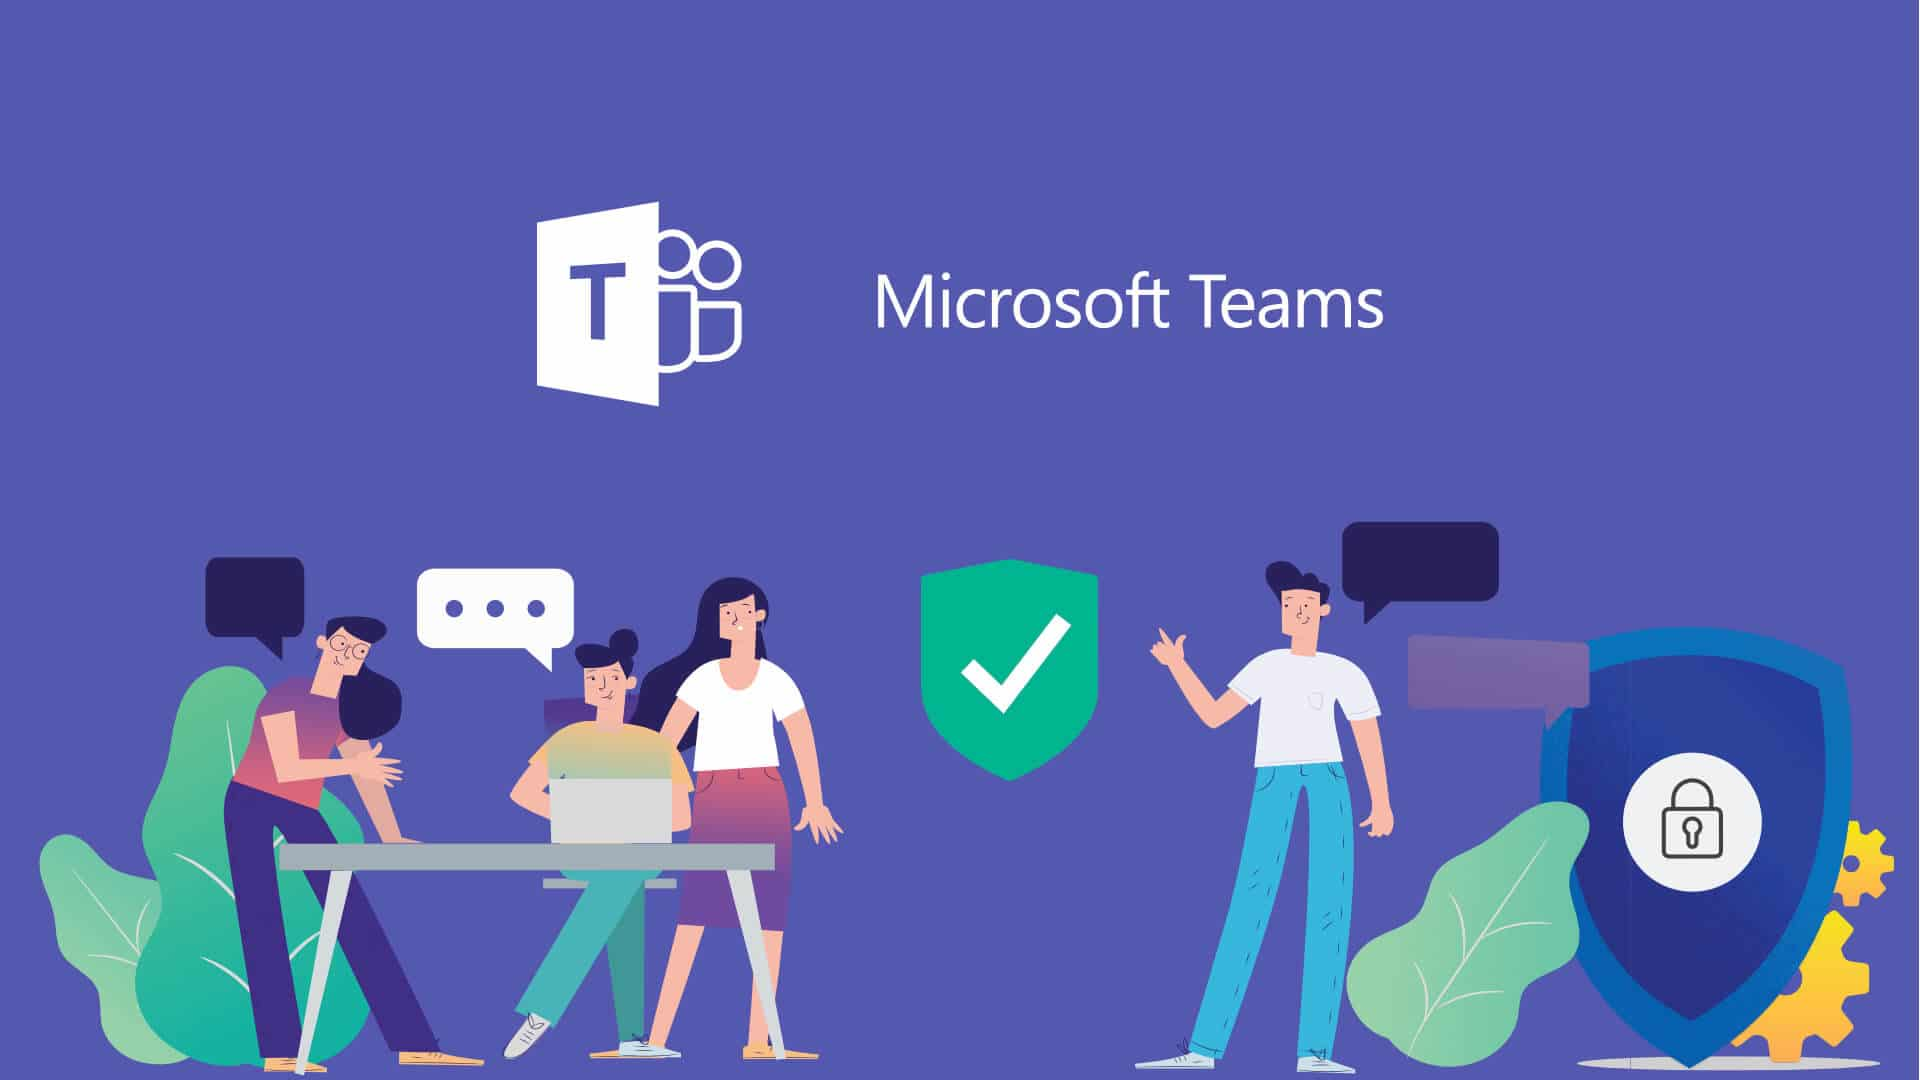 ms team image